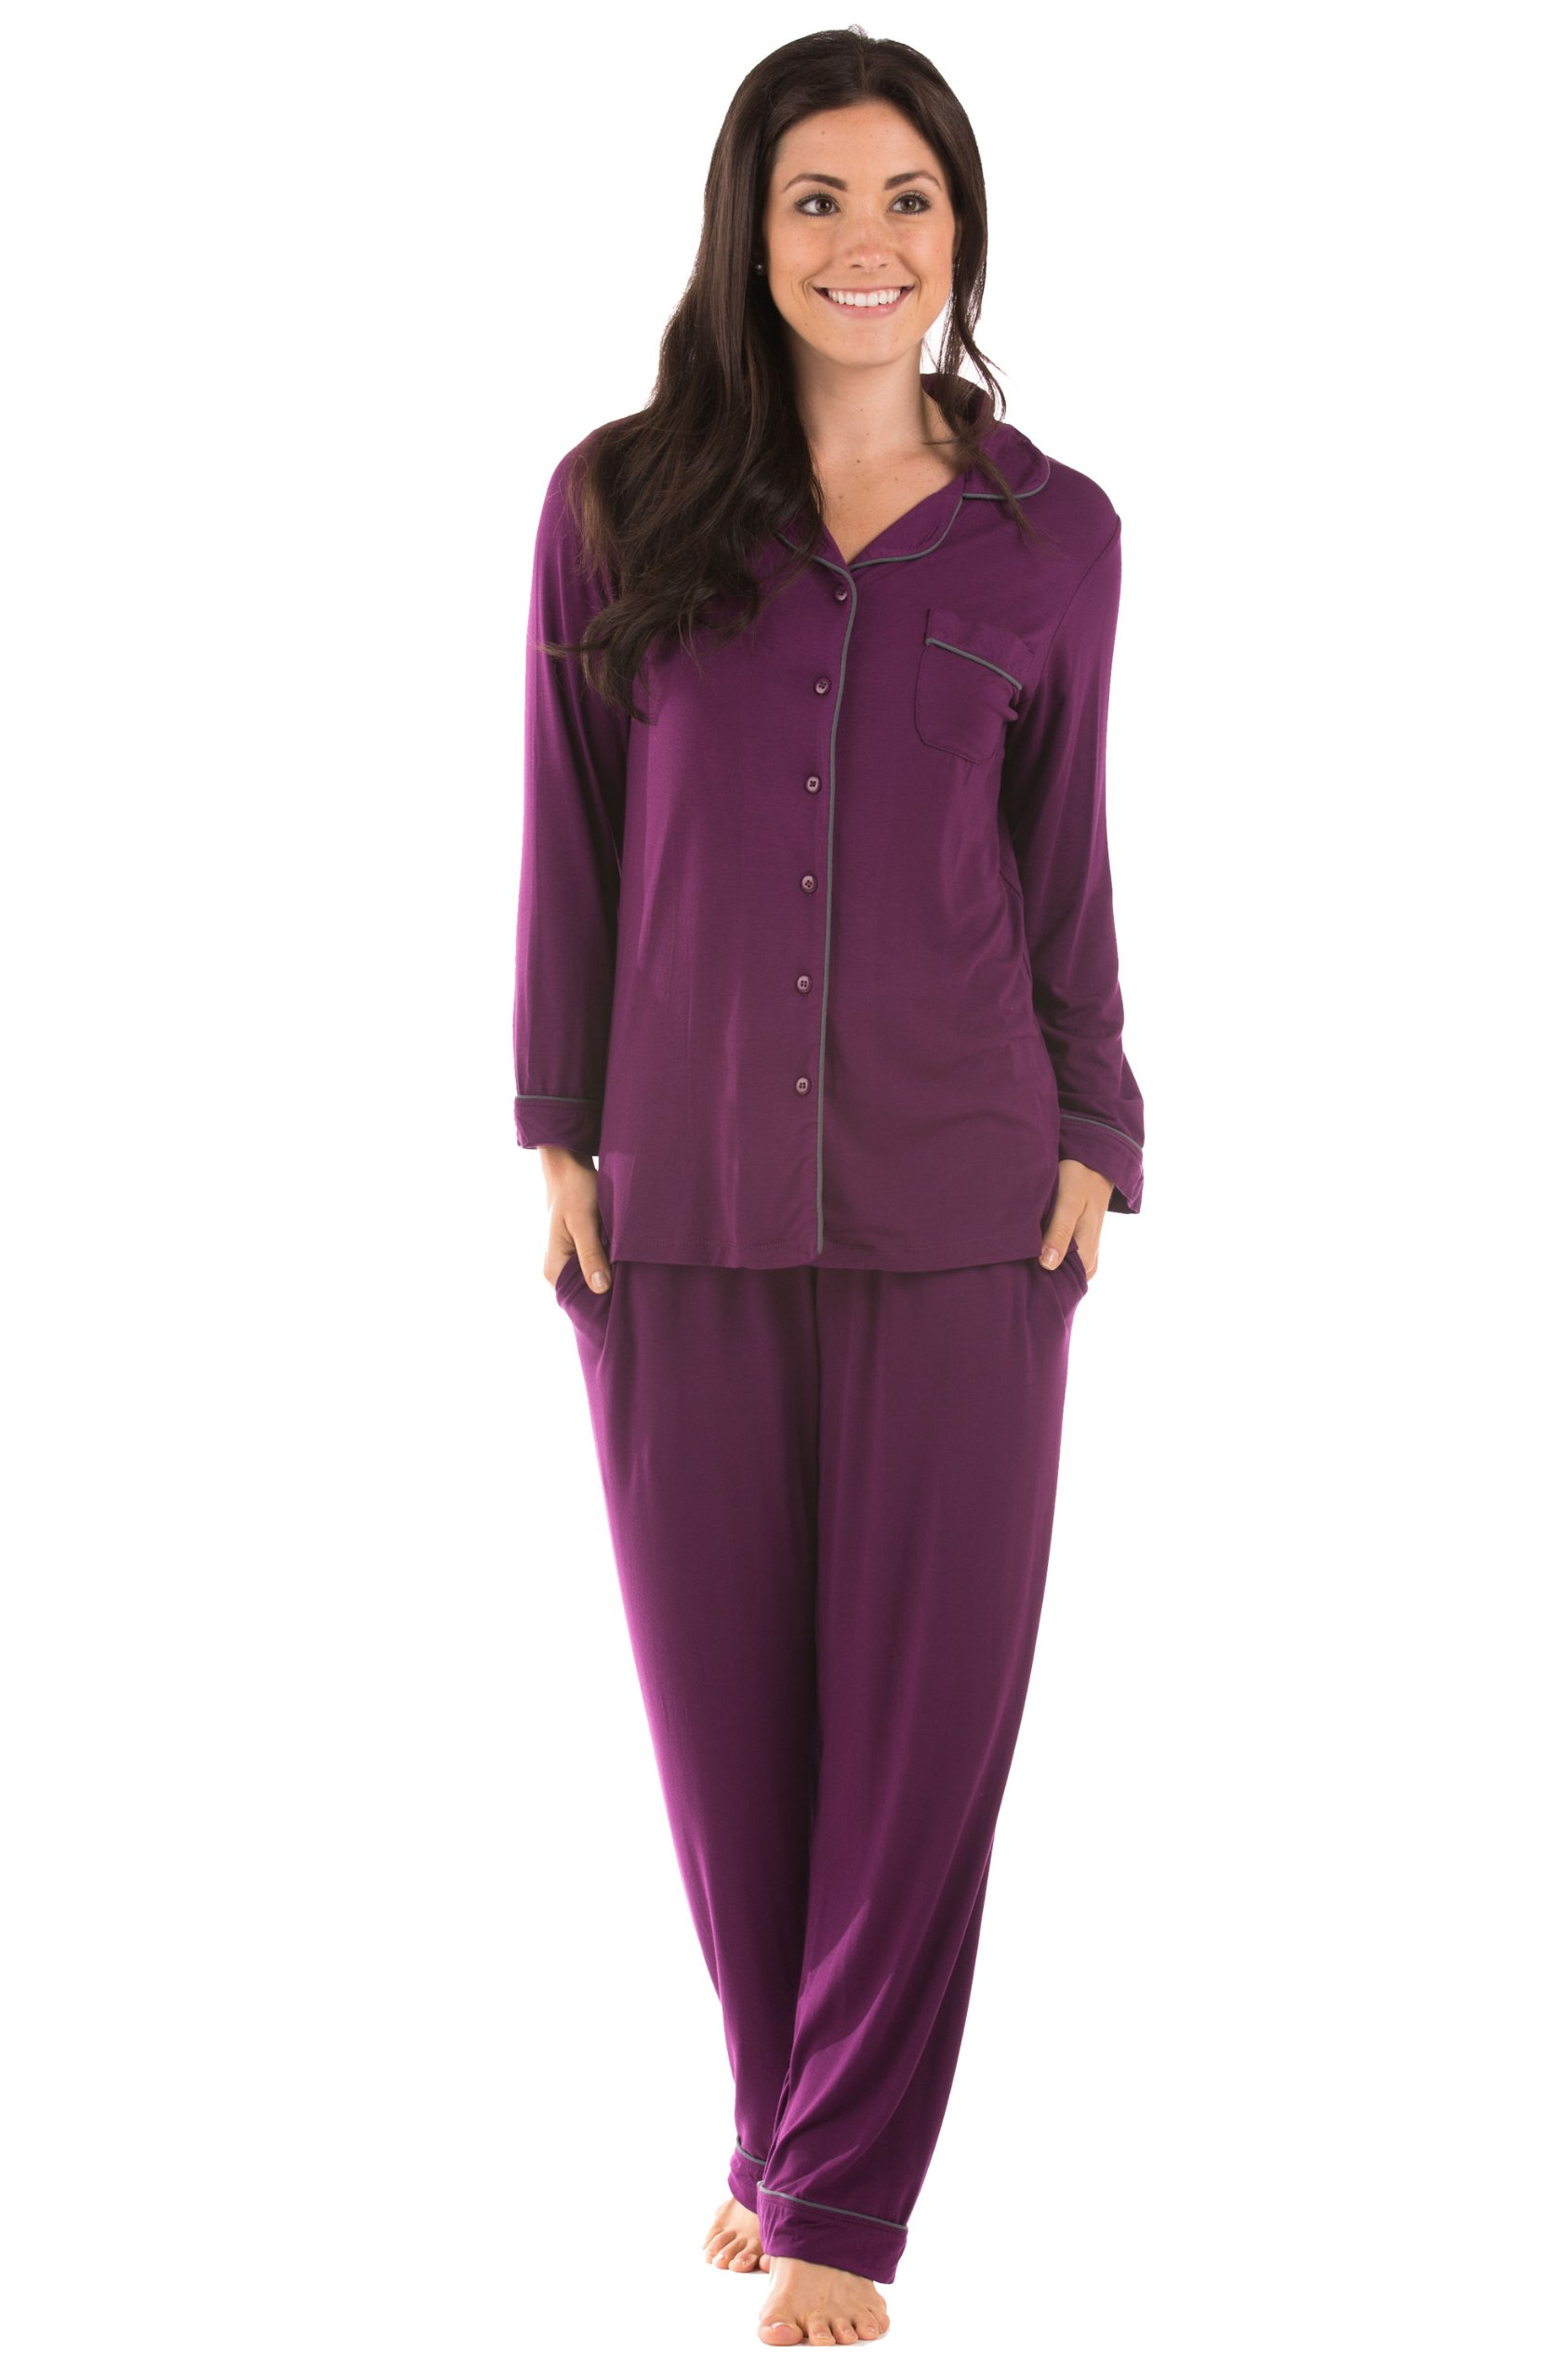 Women's Button-Up Long Sleeve Pajamas - Sleepwear set by Texere (Classicomfort, Concord Grape, Small/Petite) Romantic Gift Ideas WB0004-CON-SP